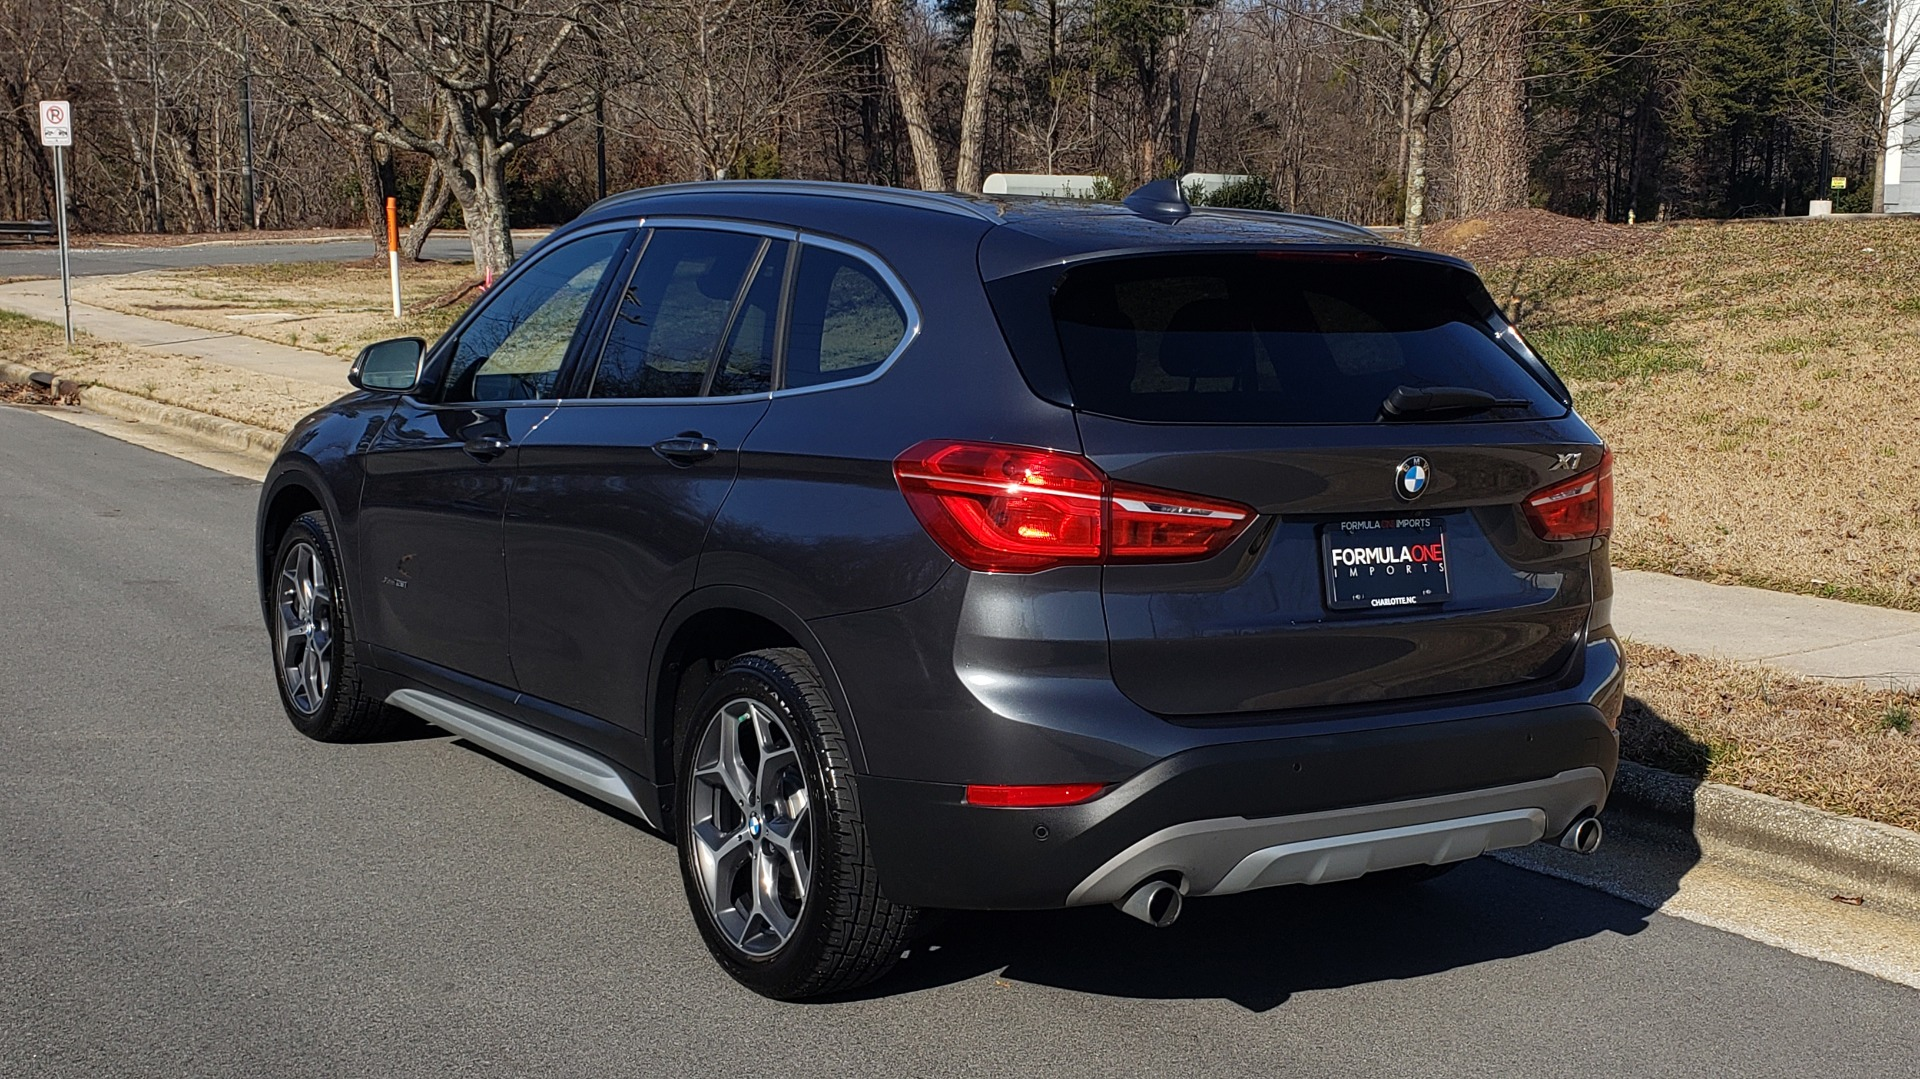 Used 2017 BMW X1 XDRIVE28I / PREM / TECH / DRVR ASST PLUS / COLD WTHR / REARVIEW for sale Sold at Formula Imports in Charlotte NC 28227 3